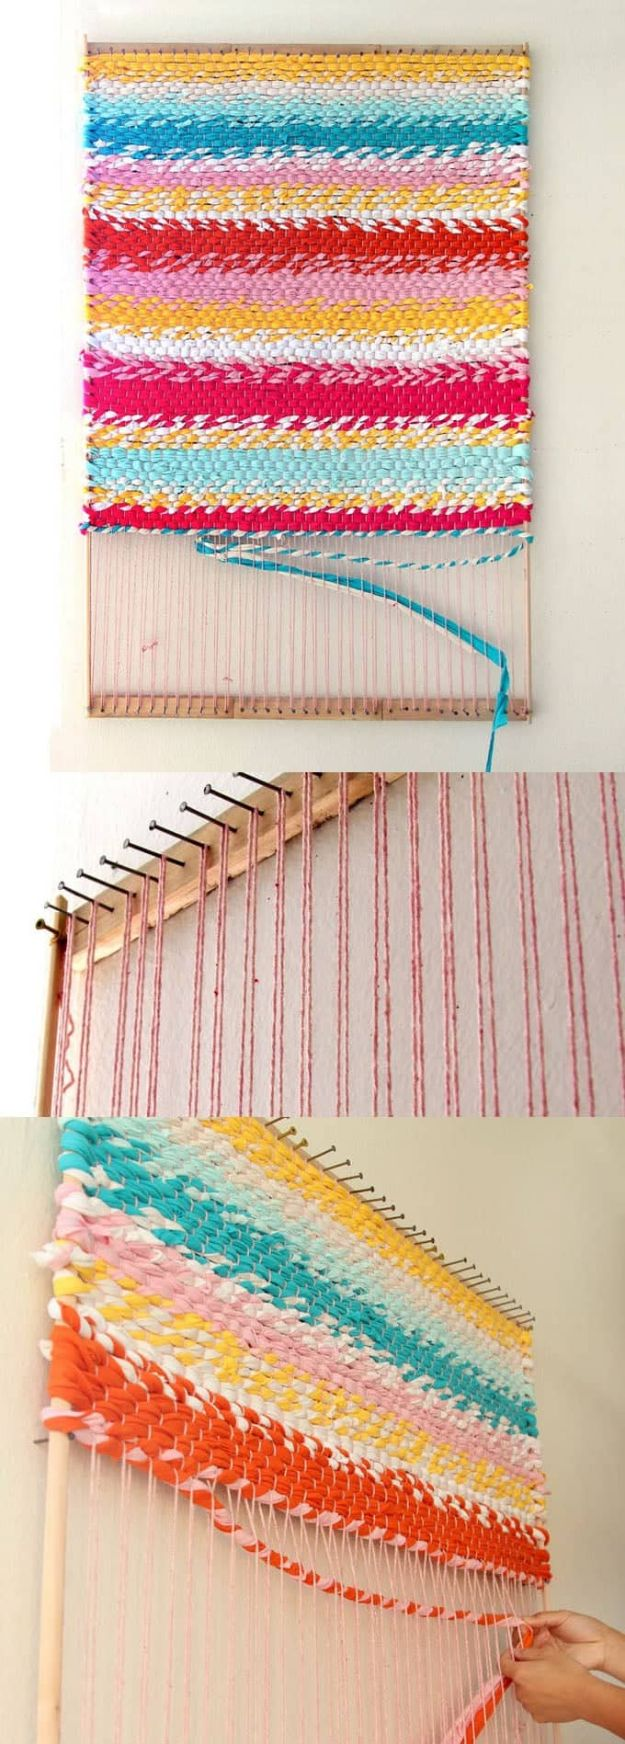 DIY Rugs - Weave A T-Shirt Rug With Easy DIY Loom - Ideas for An Easy Handmade Rug for Living Room, Bedroom, Kitchen Mat and Cheap Area Rugs You Can Make - Stencil Art Tutorial, Painting Tips, Fabric, Yarn, Old Denim Jeans, Rope, Tshirt, Pom Pom, Fur, Crochet, Woven and Outdoor Projects - Large and Small Carpet http://diyjoy.com/diy-rug-tutorials